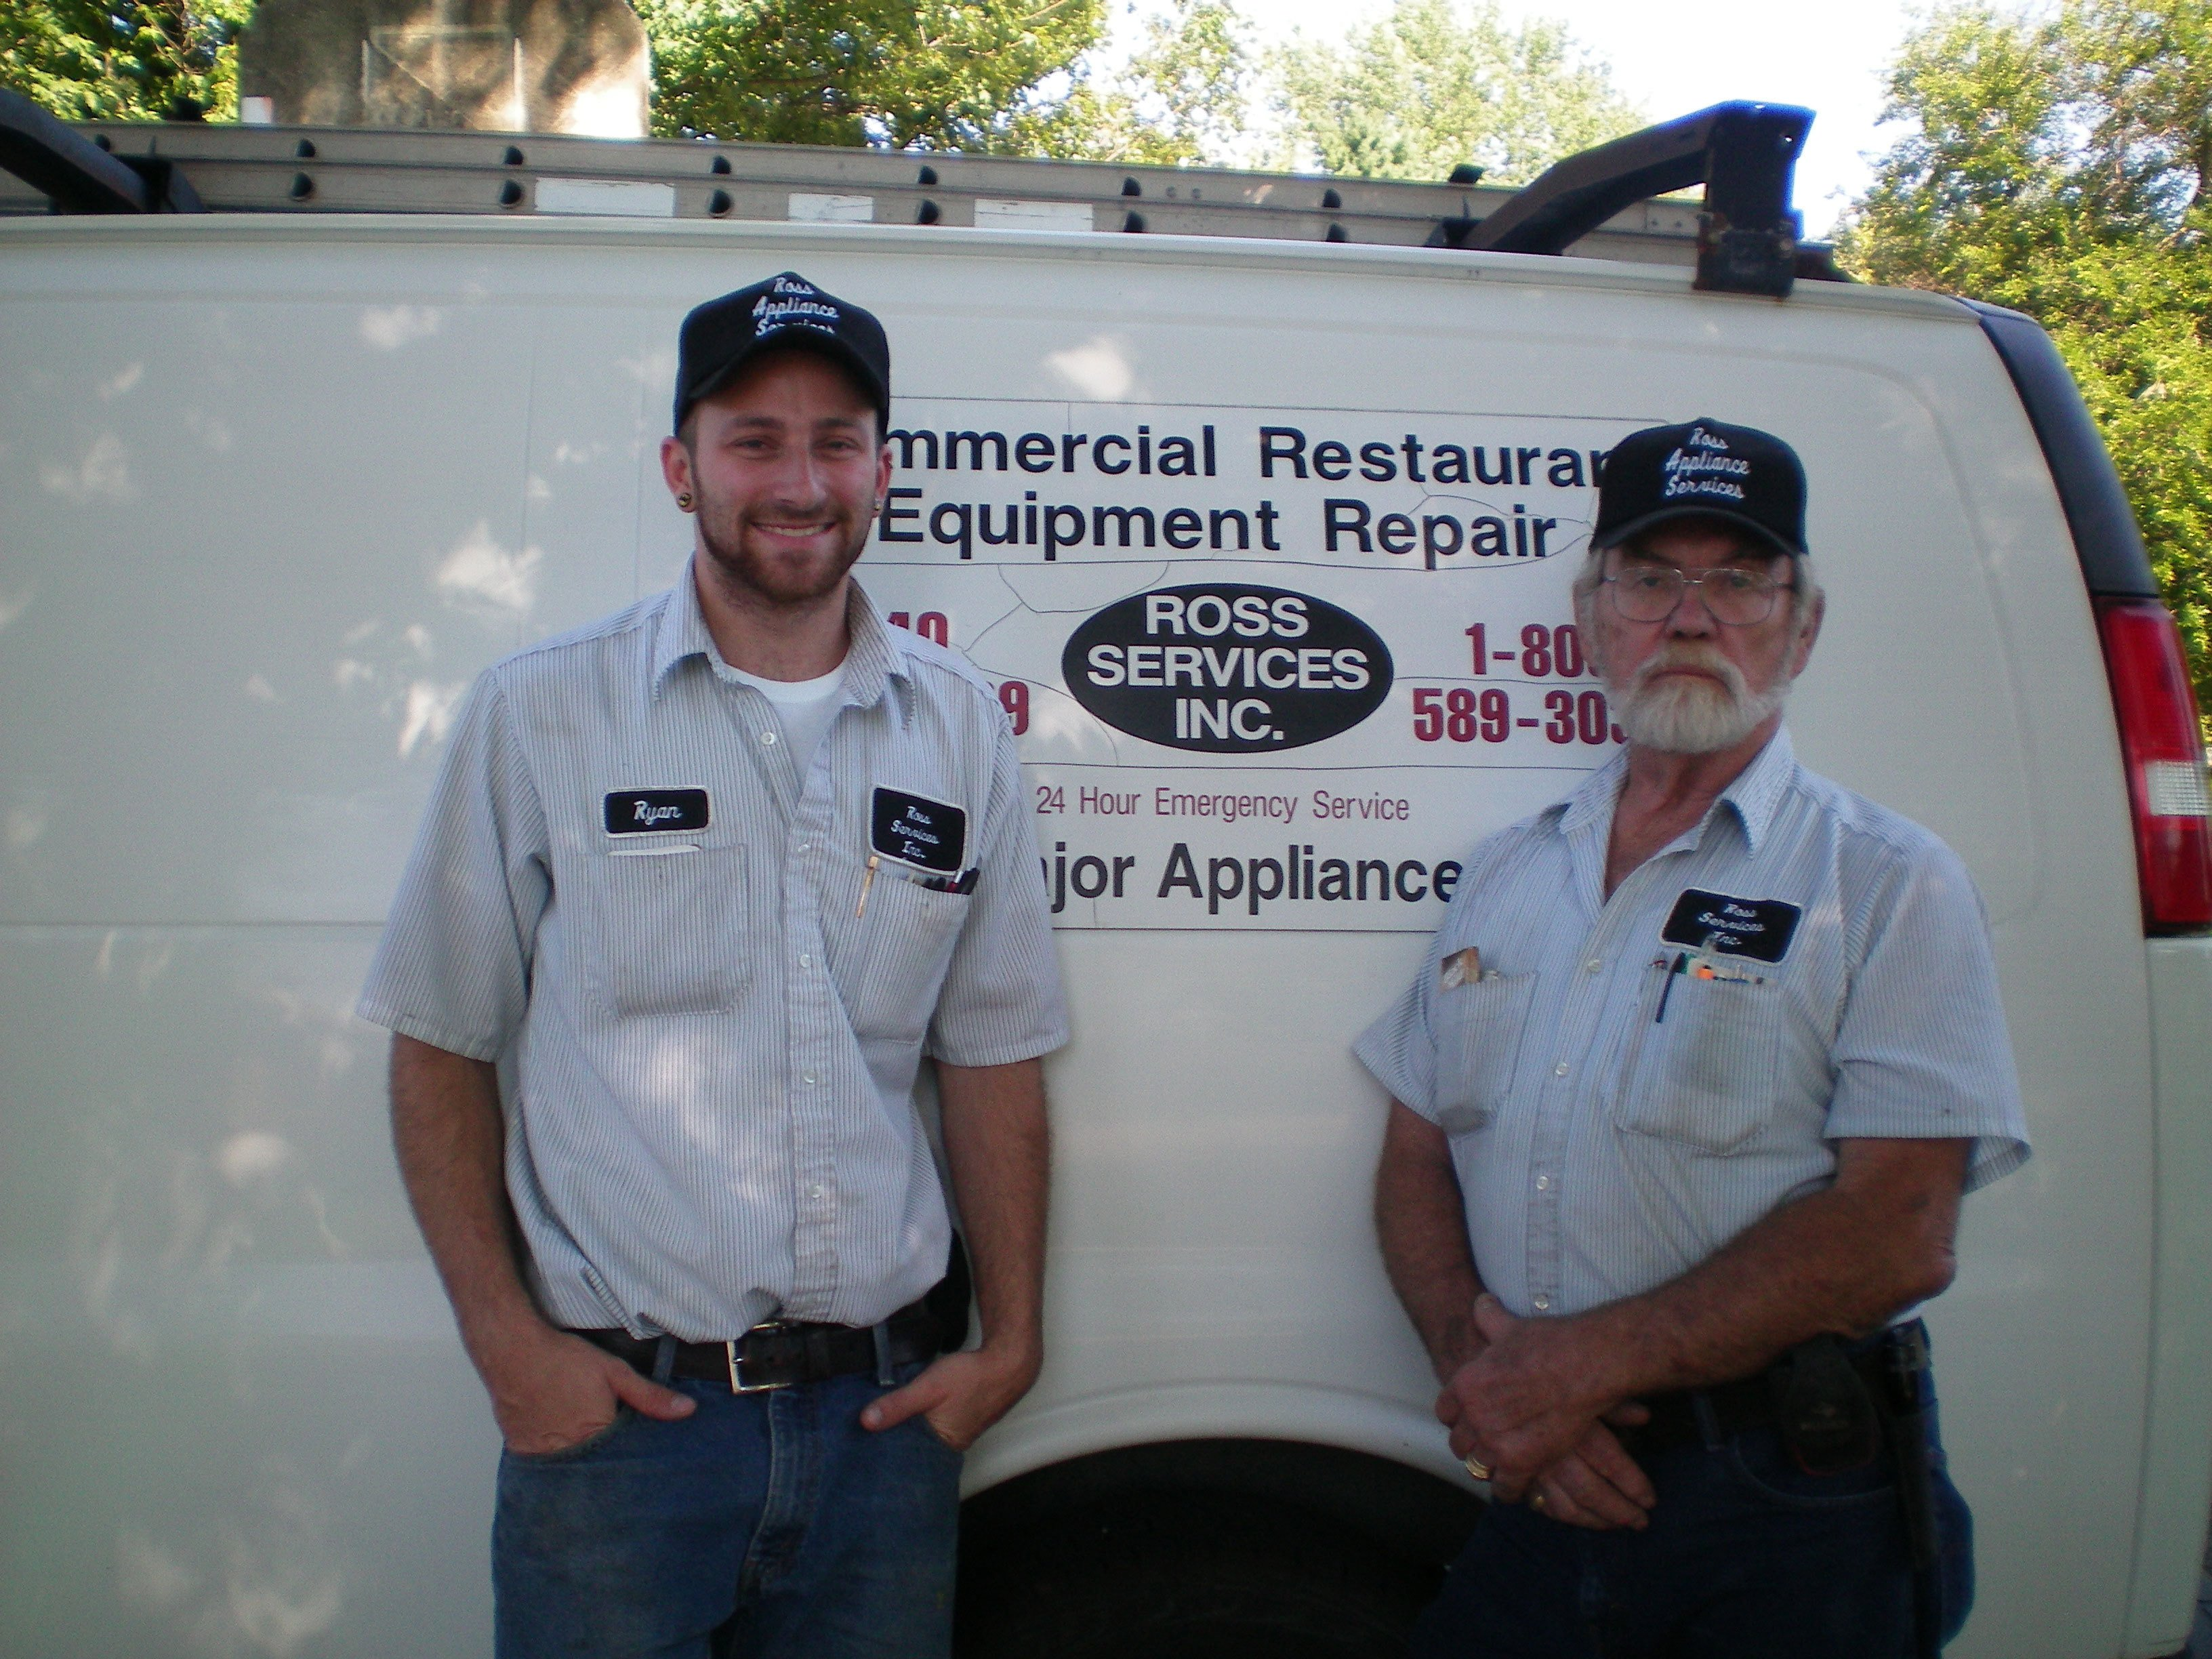 Team members of Ross Appliance Service in South Amherst, OH